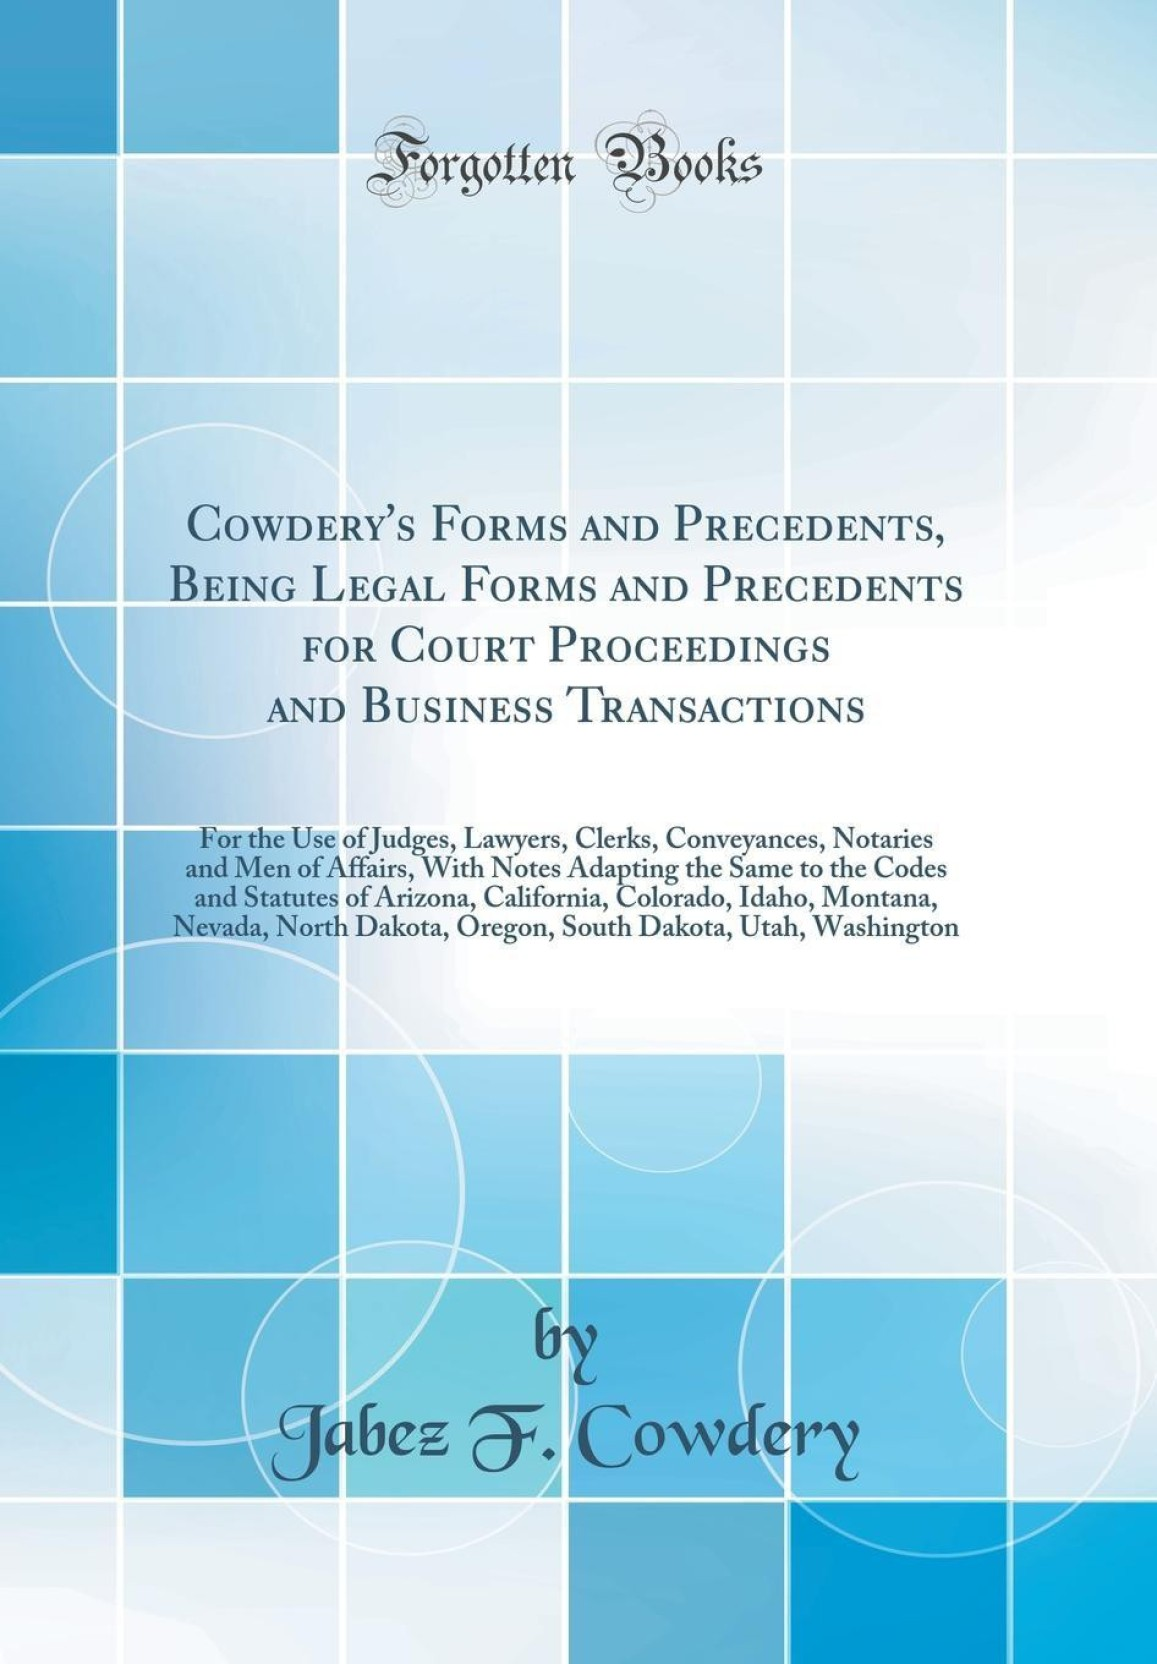 Cowdery's Forms and Precedents, Being Legal Forms and